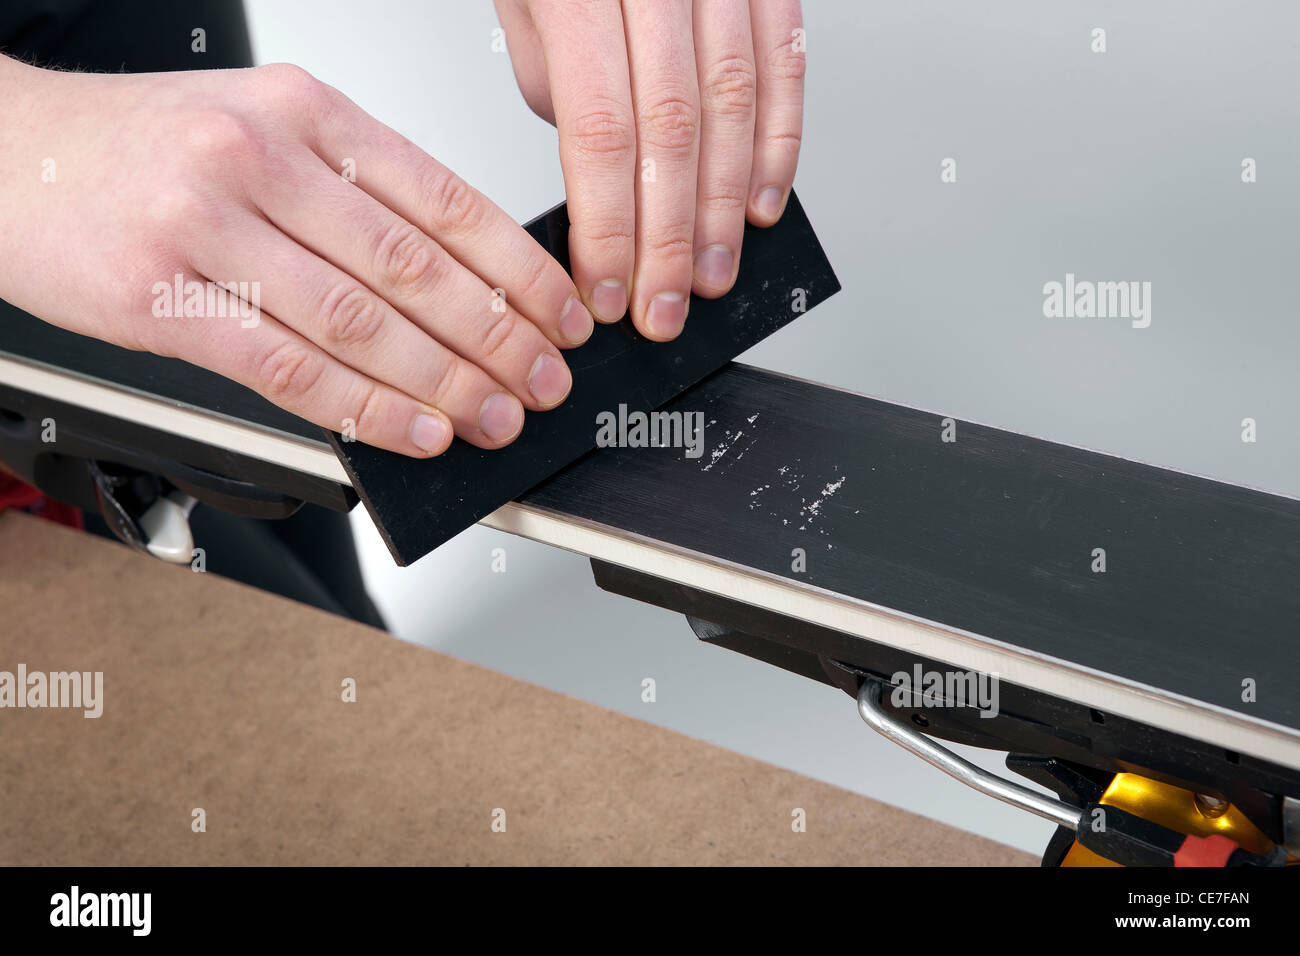 removing excess wax from race ski base with plastic scraper - Stock Image